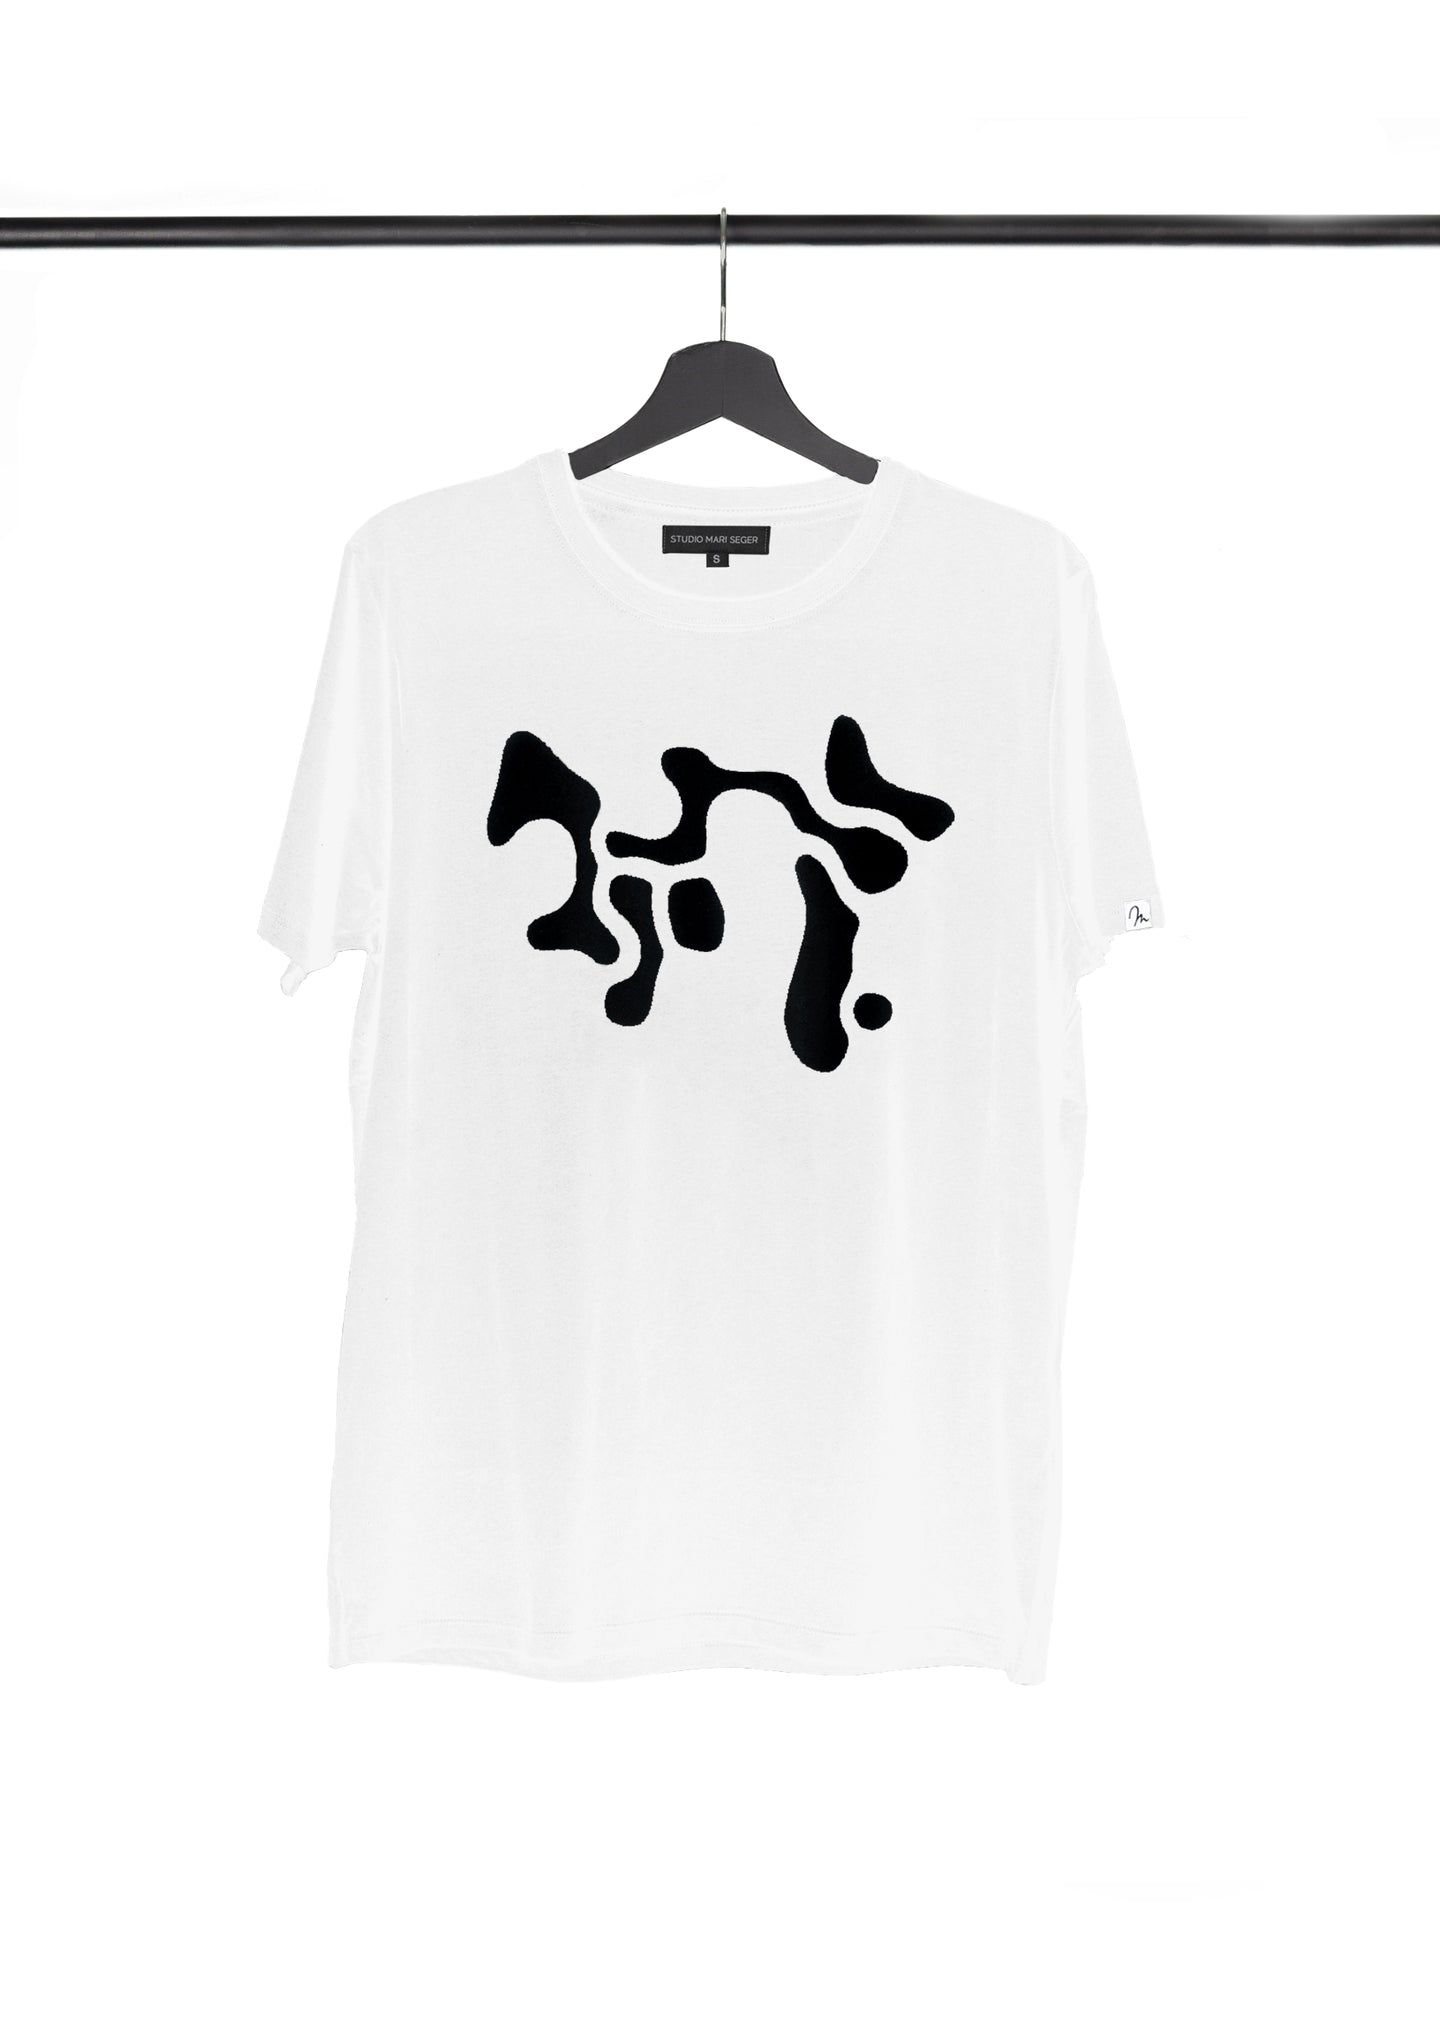 SHADO / white T-shirt